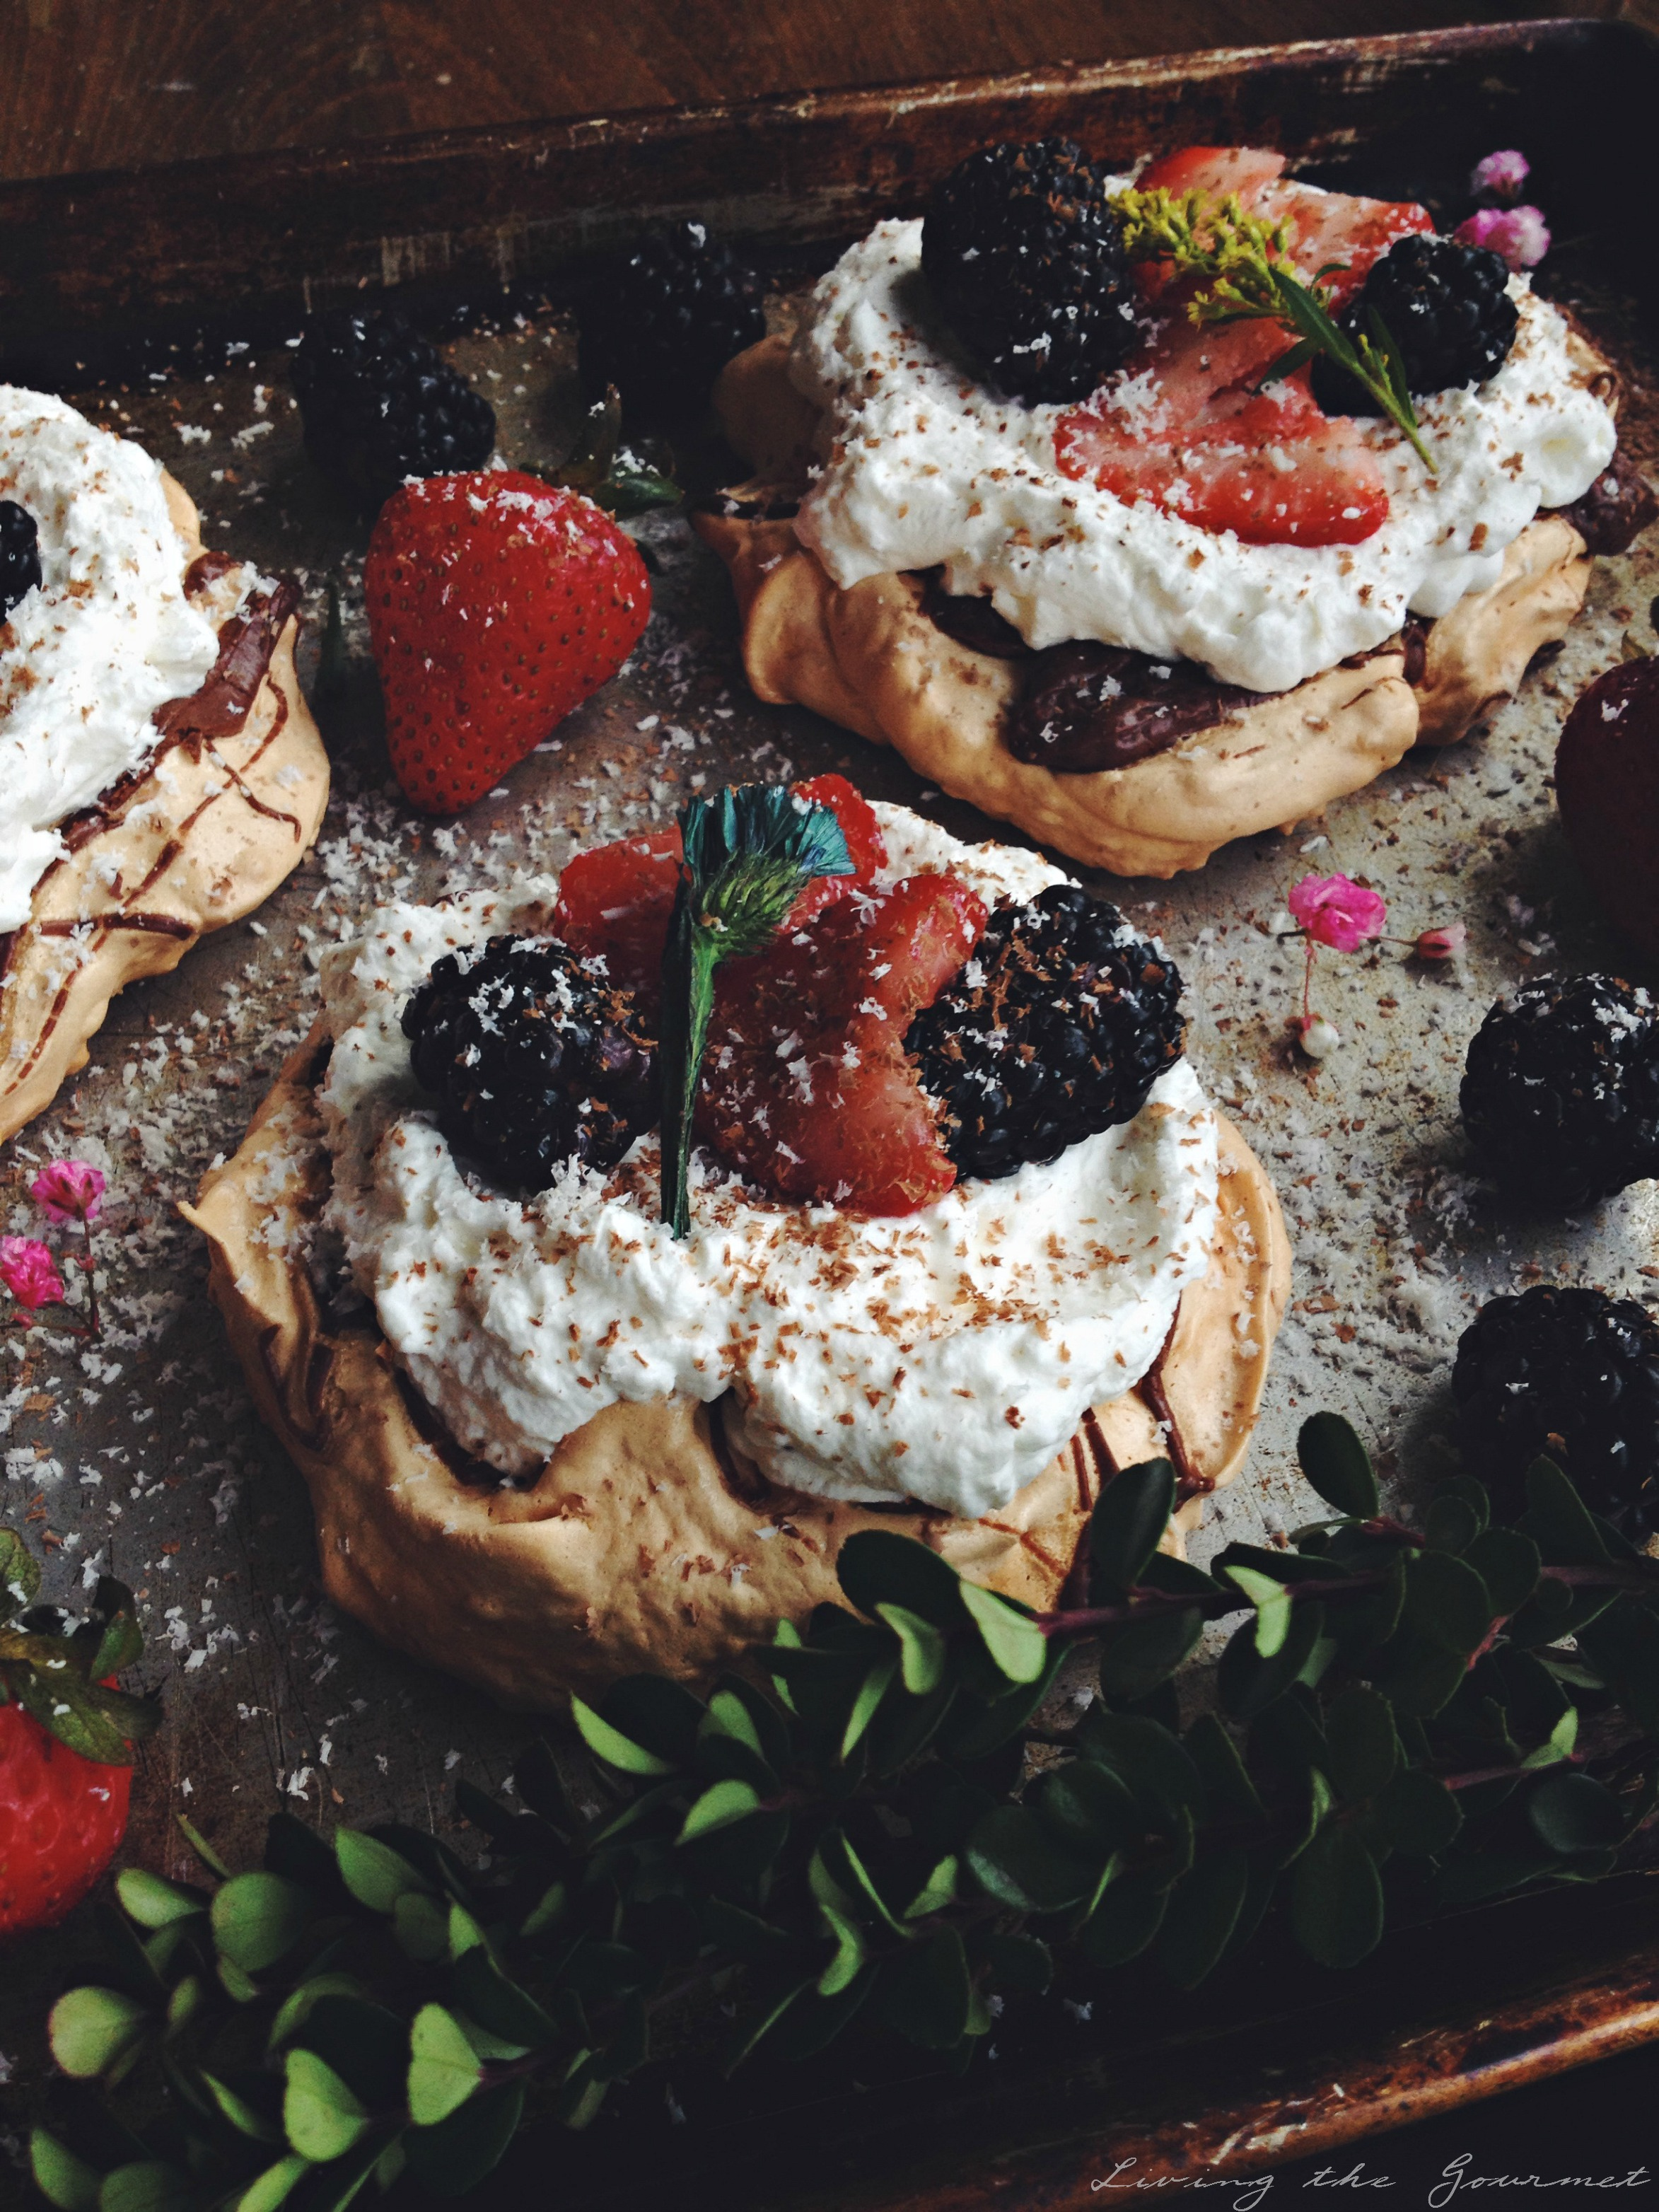 Living the Gourmet: Nutella Pavlova